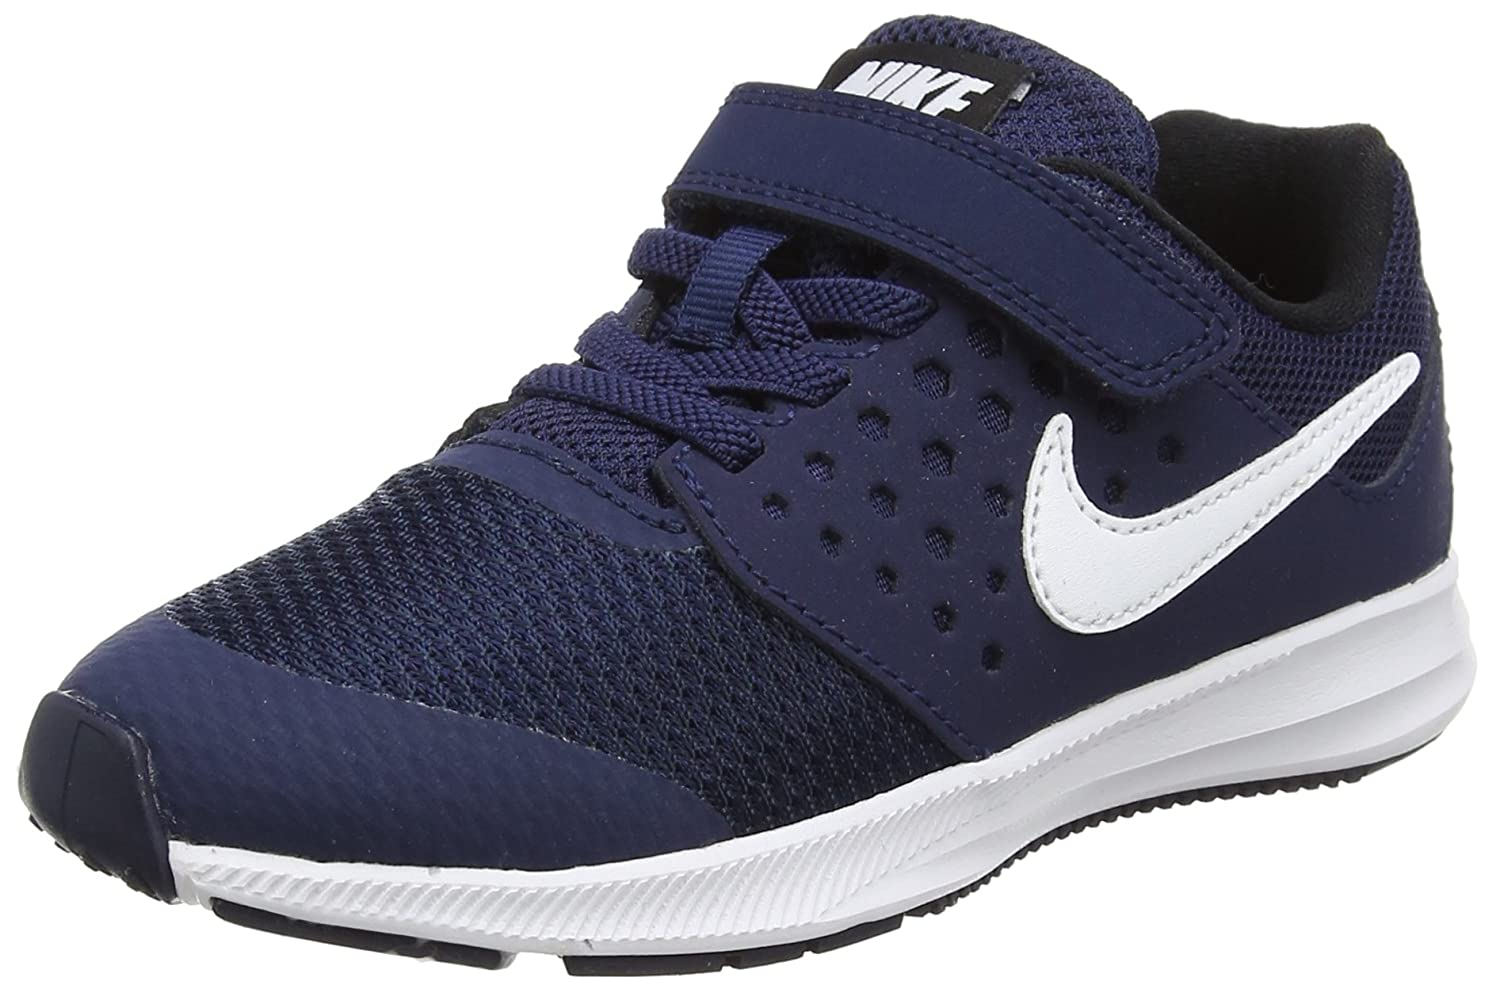 Nike Girls Downshifter 7 (PSV) Competition Running Shoes